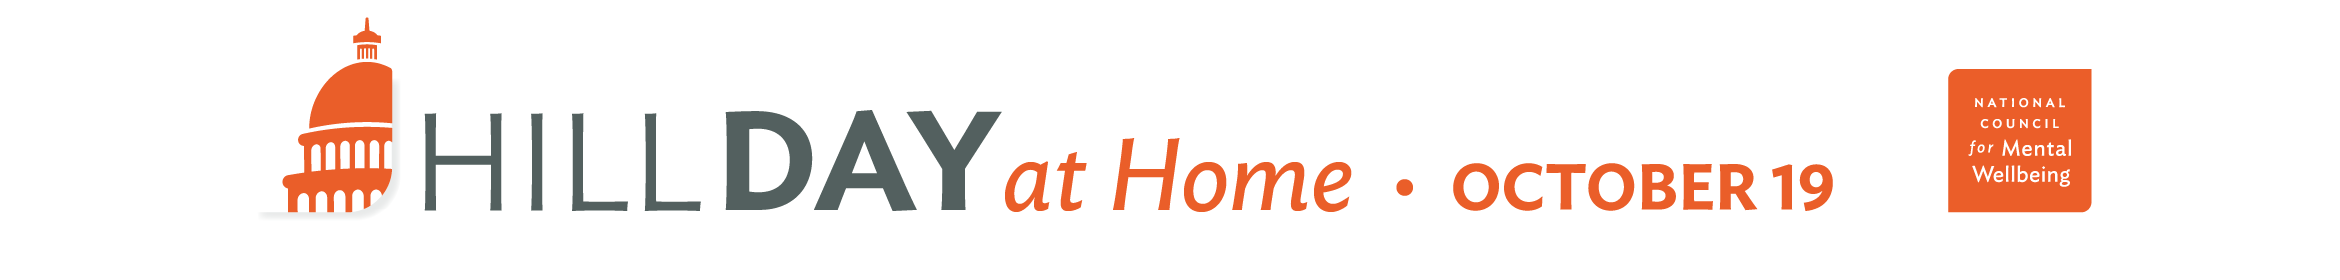 Hill Day at Home Main banner